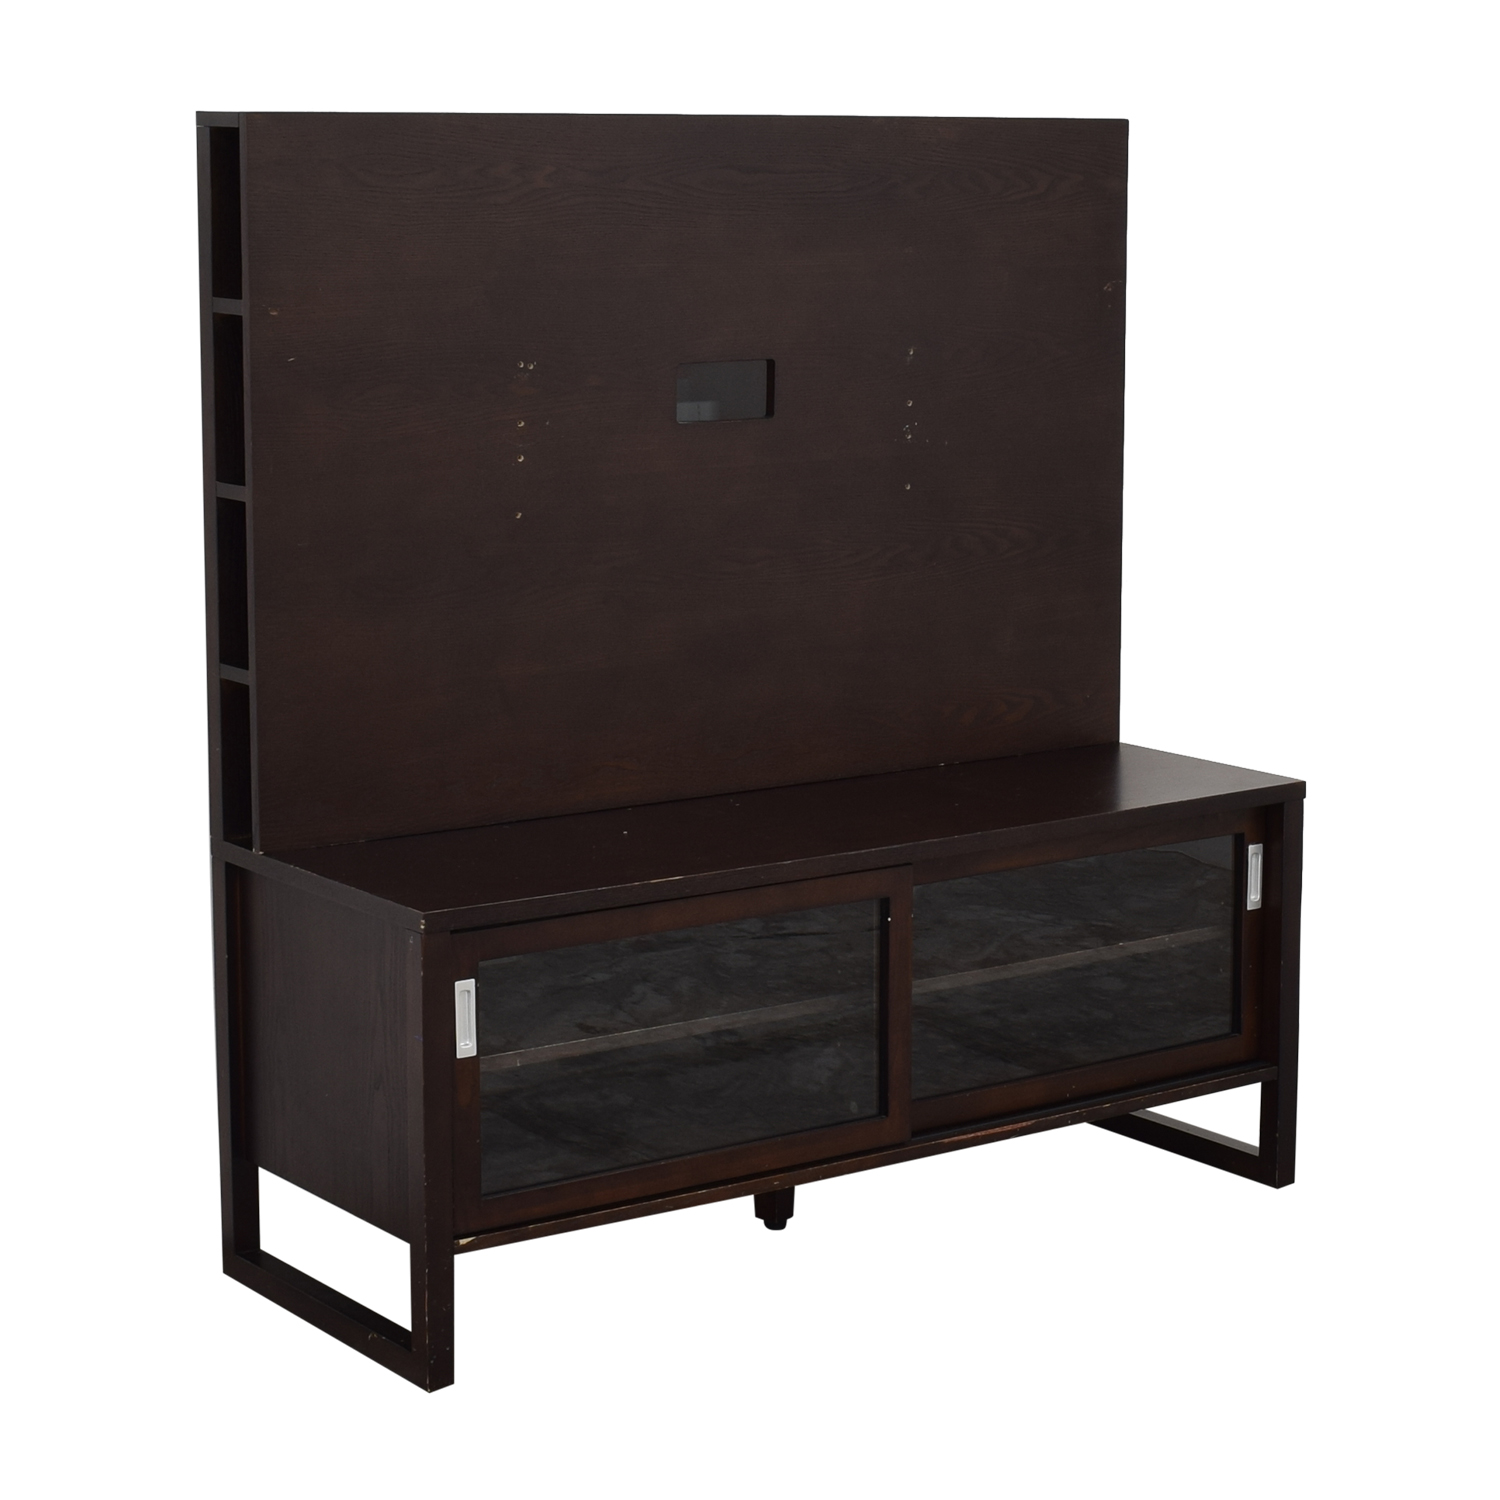 Crate & Barrel Crate & Barrel Entertainment Console with Back Panel Storage